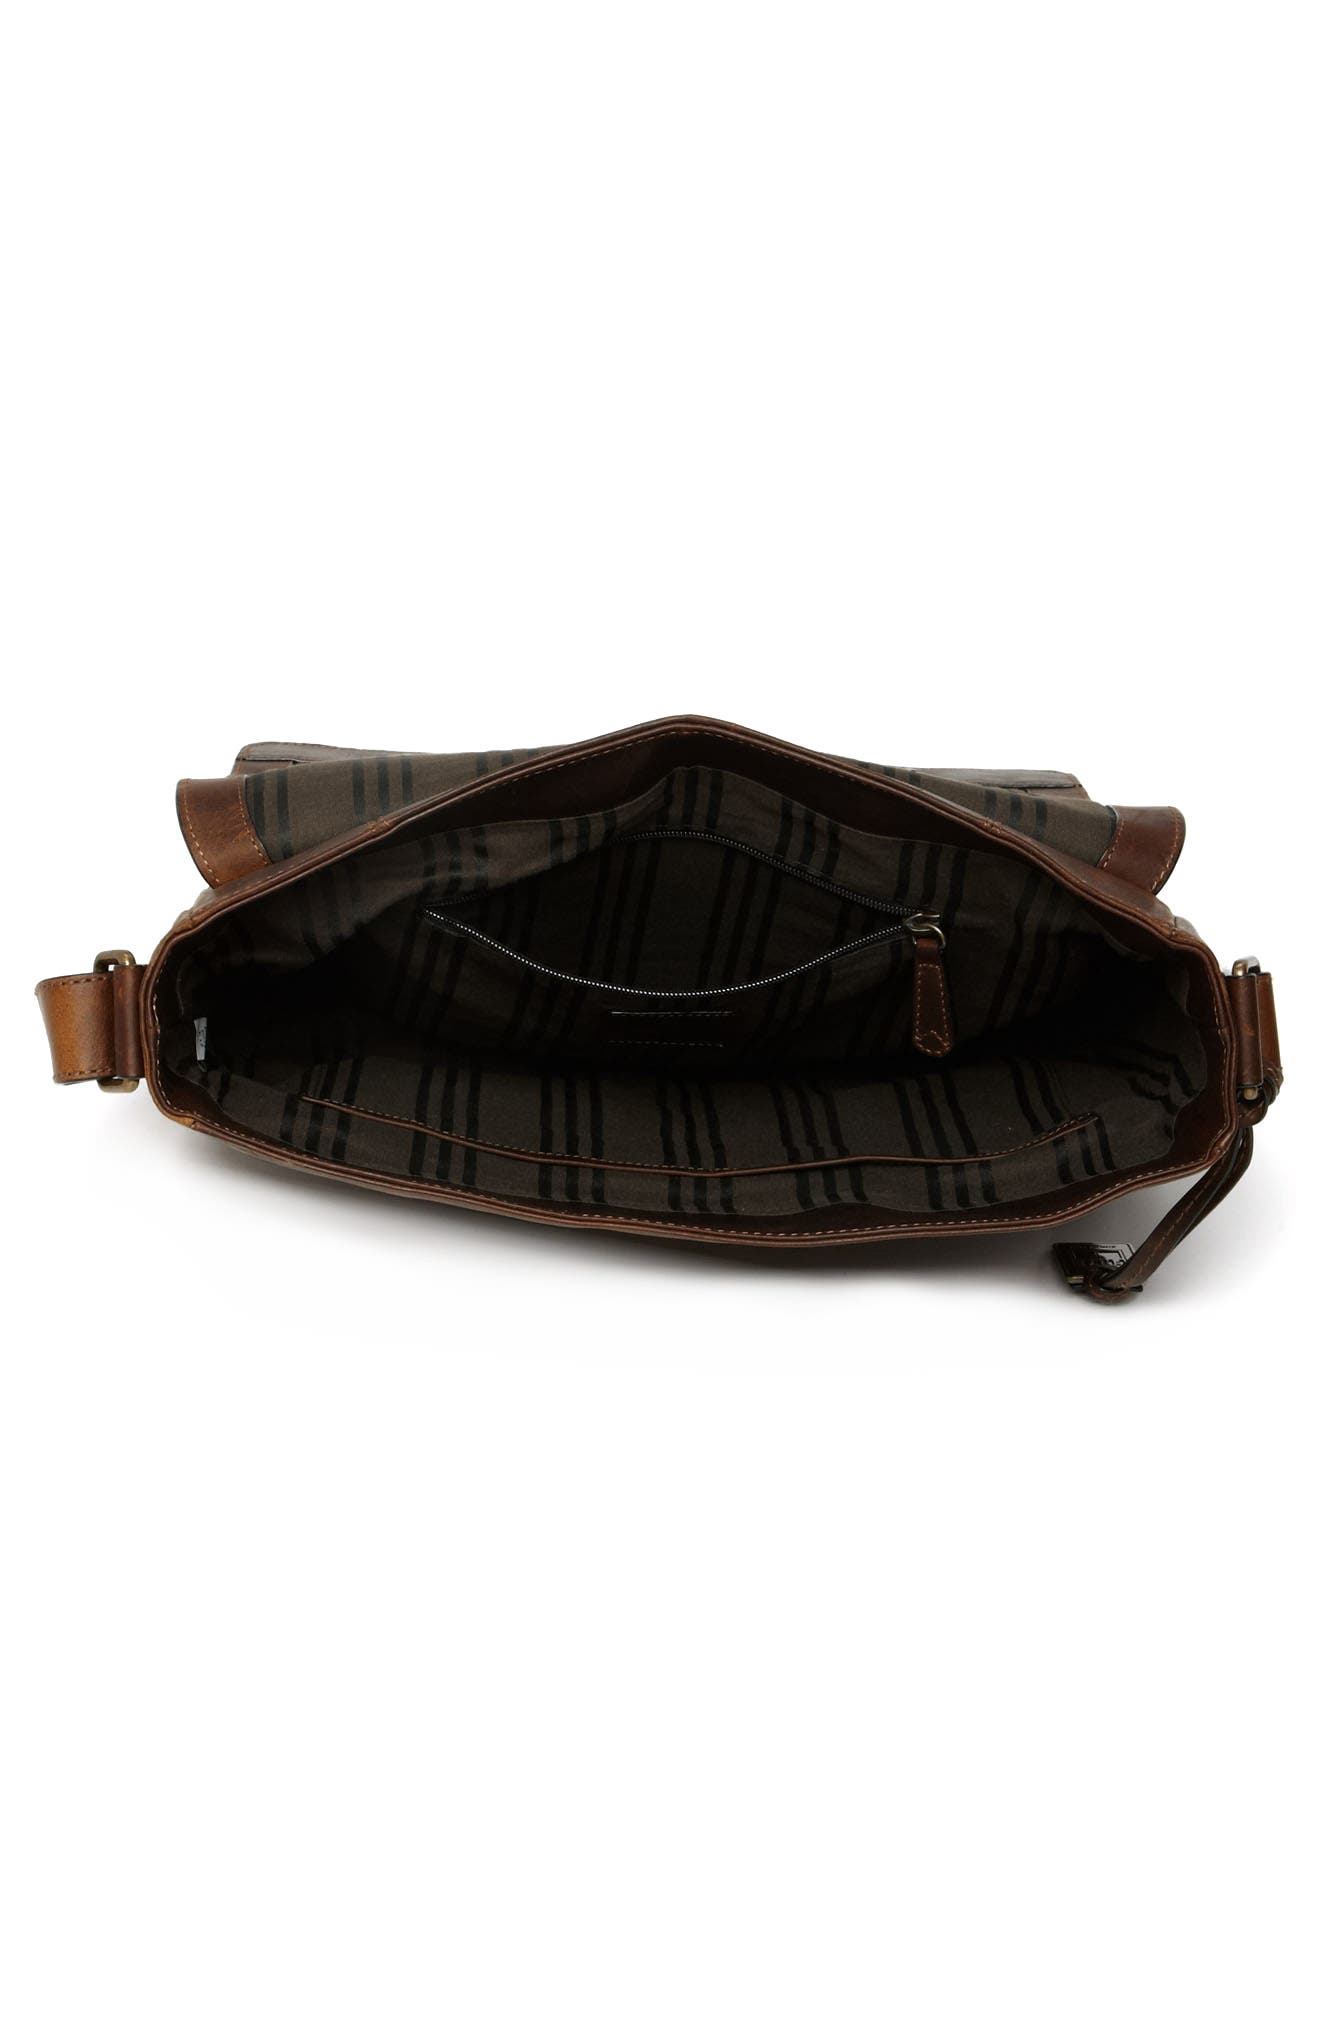 'Logan' Messenger Bag,                             Alternate thumbnail 4, color,                             ANTIQUE DARK BROWN